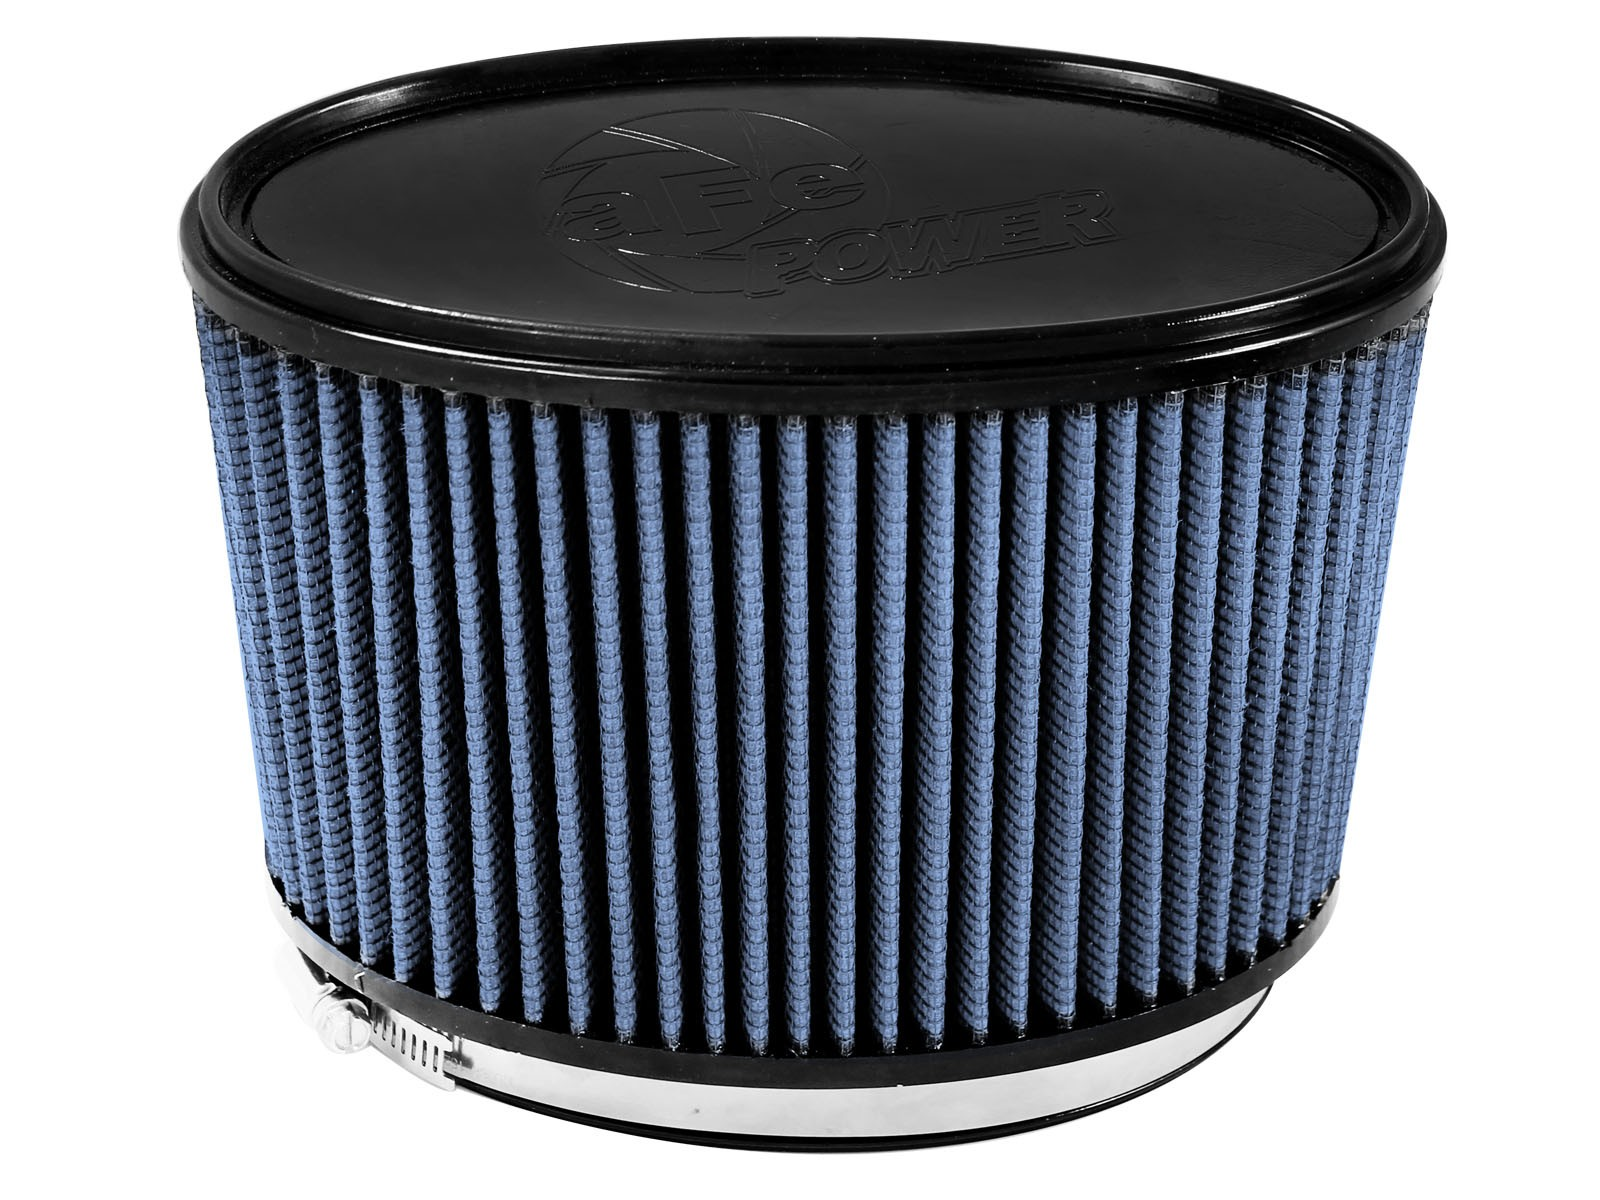 aFe POWER 24-90083 Magnum FLOW Pro 5R Air Filter